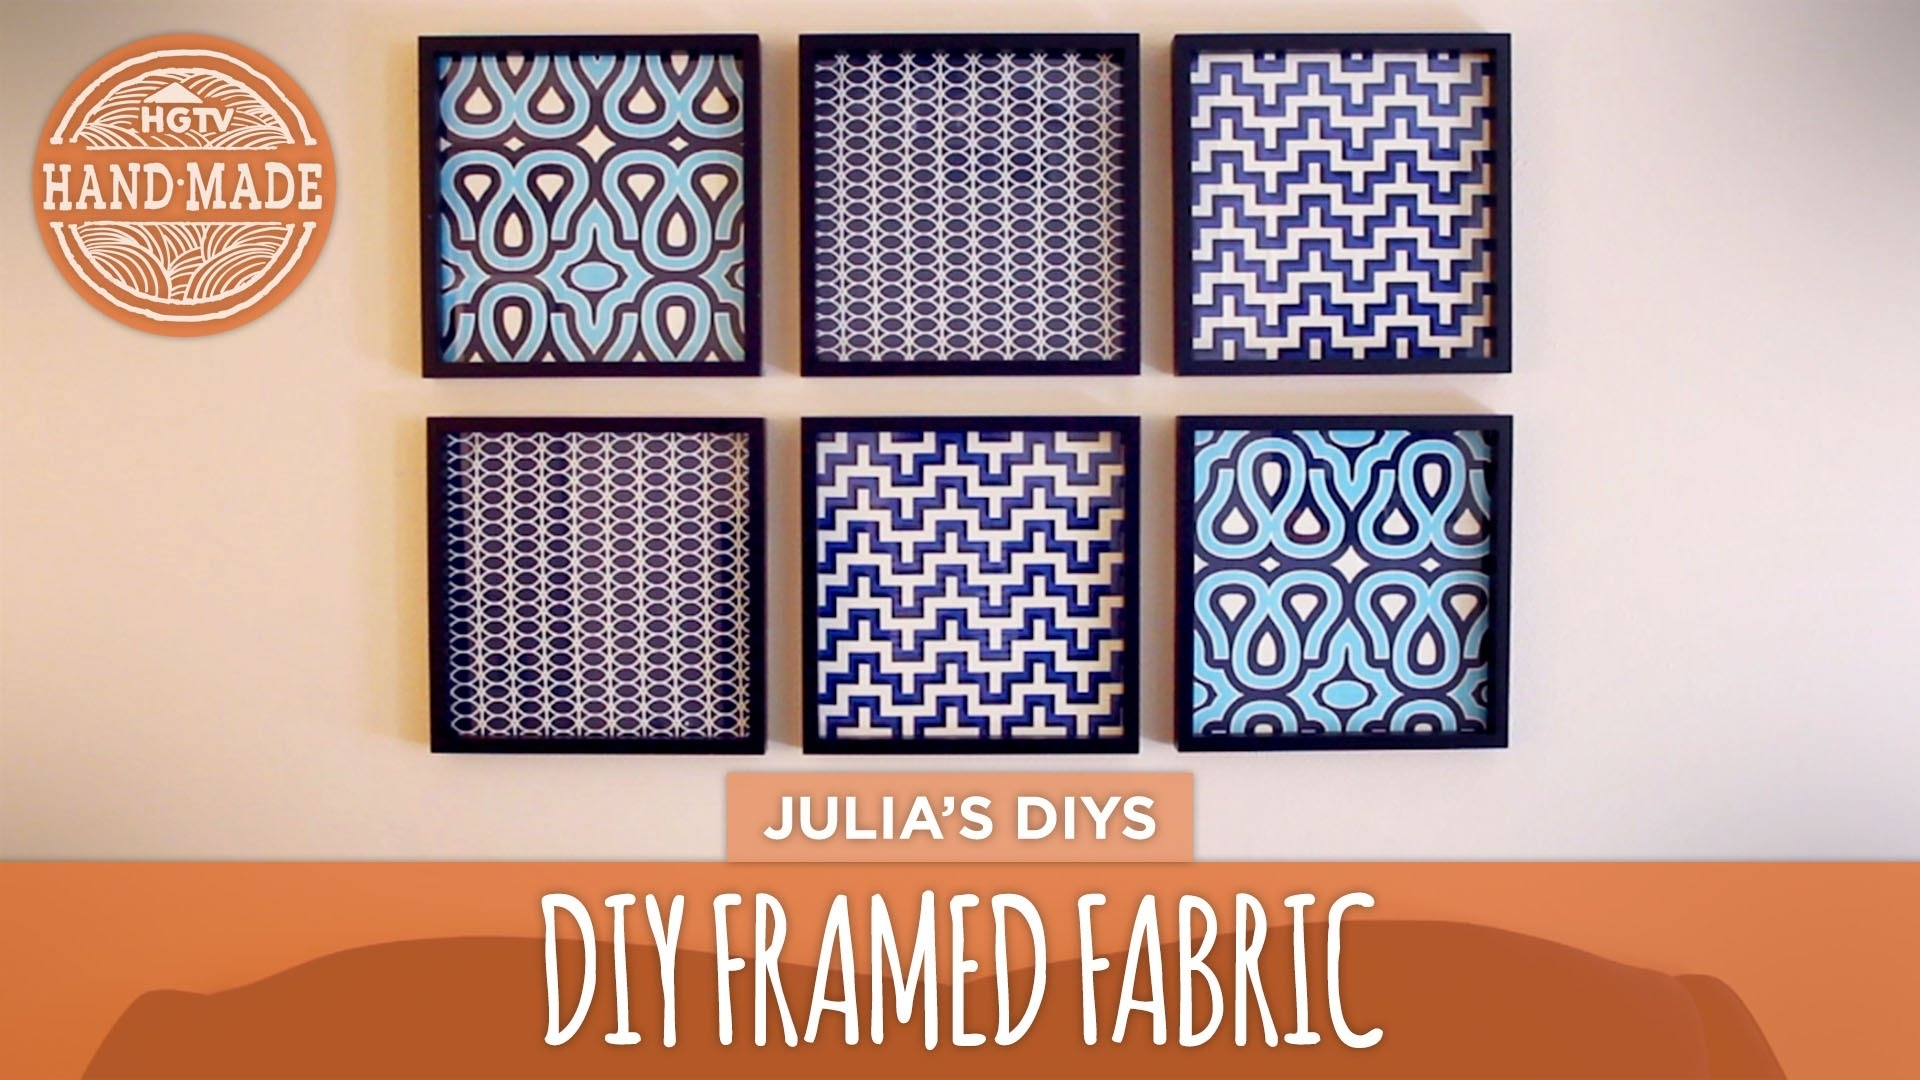 Diy Framed Fabric Gallery Wall – Hgtv Handmade – Youtube In Most Recently Released Blue Fabric Wall Art (View 2 of 15)